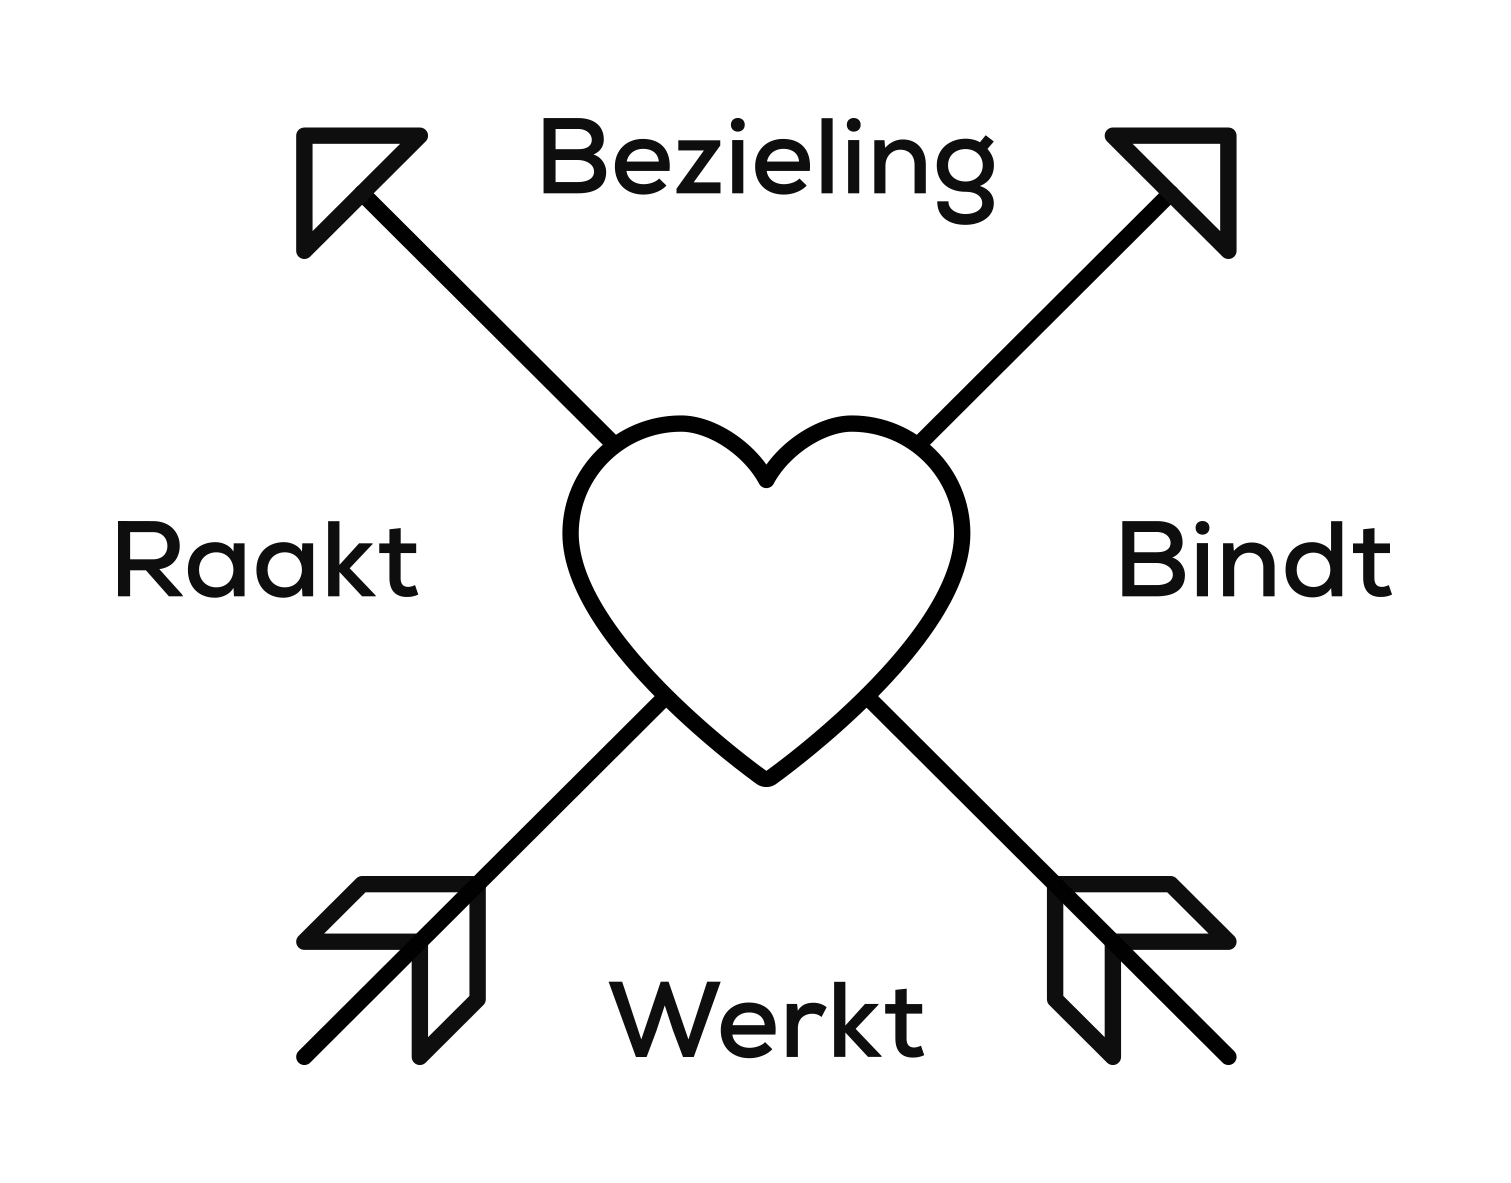 bezieling logo 2018 02.png